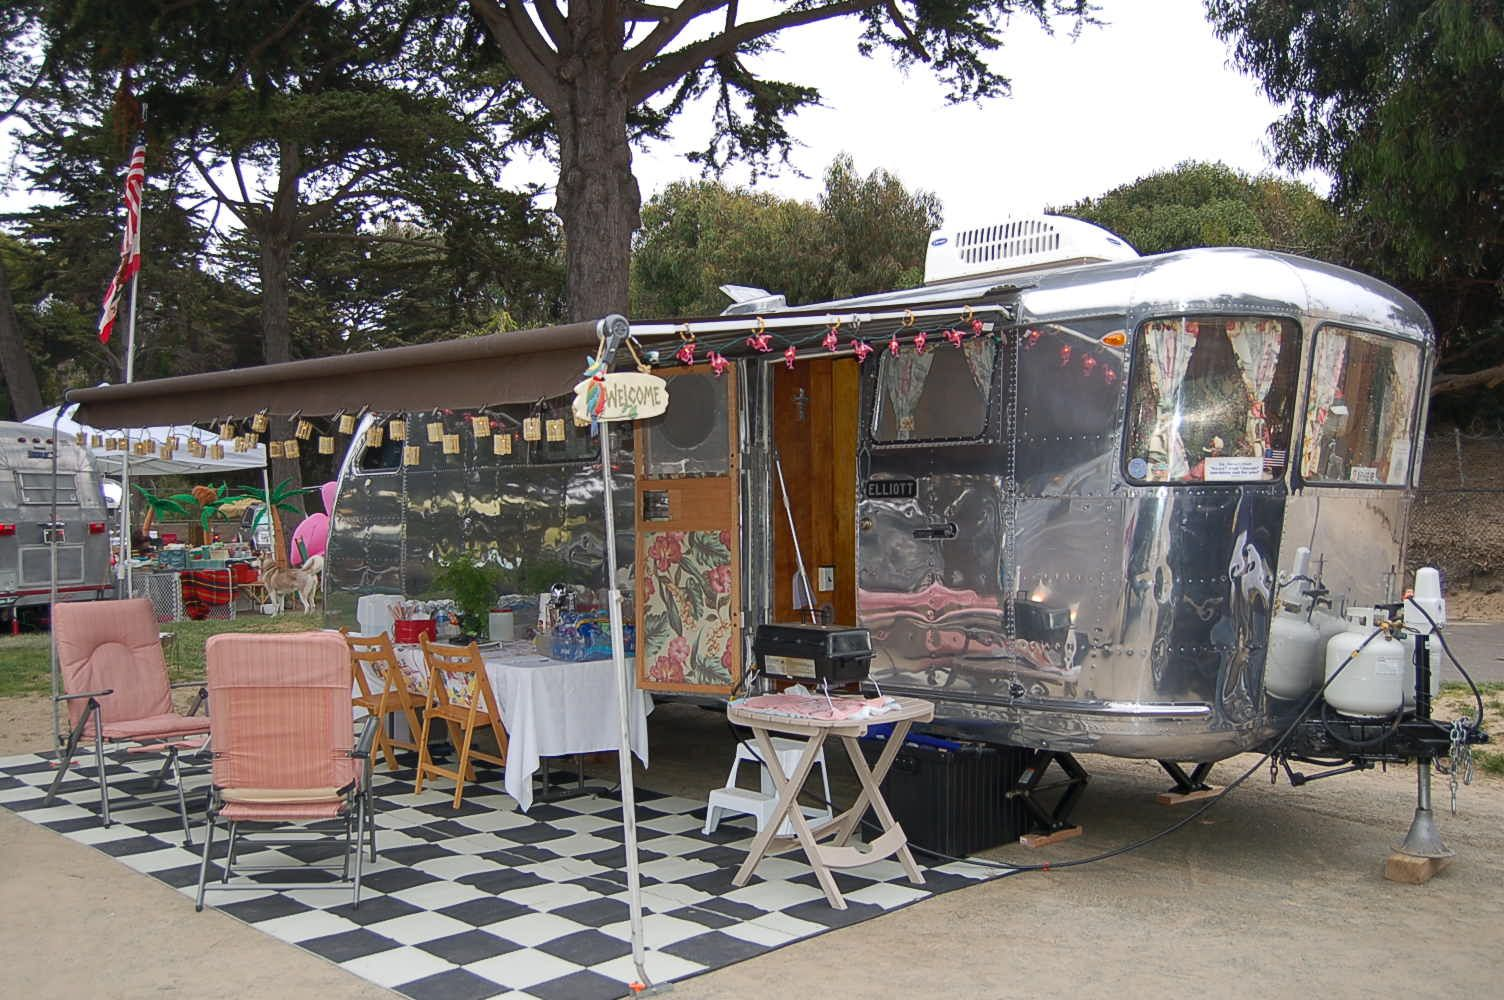 Vintage 1947 Spartan Manor Trailer With Large Awning Setup For Dinner Party Patio